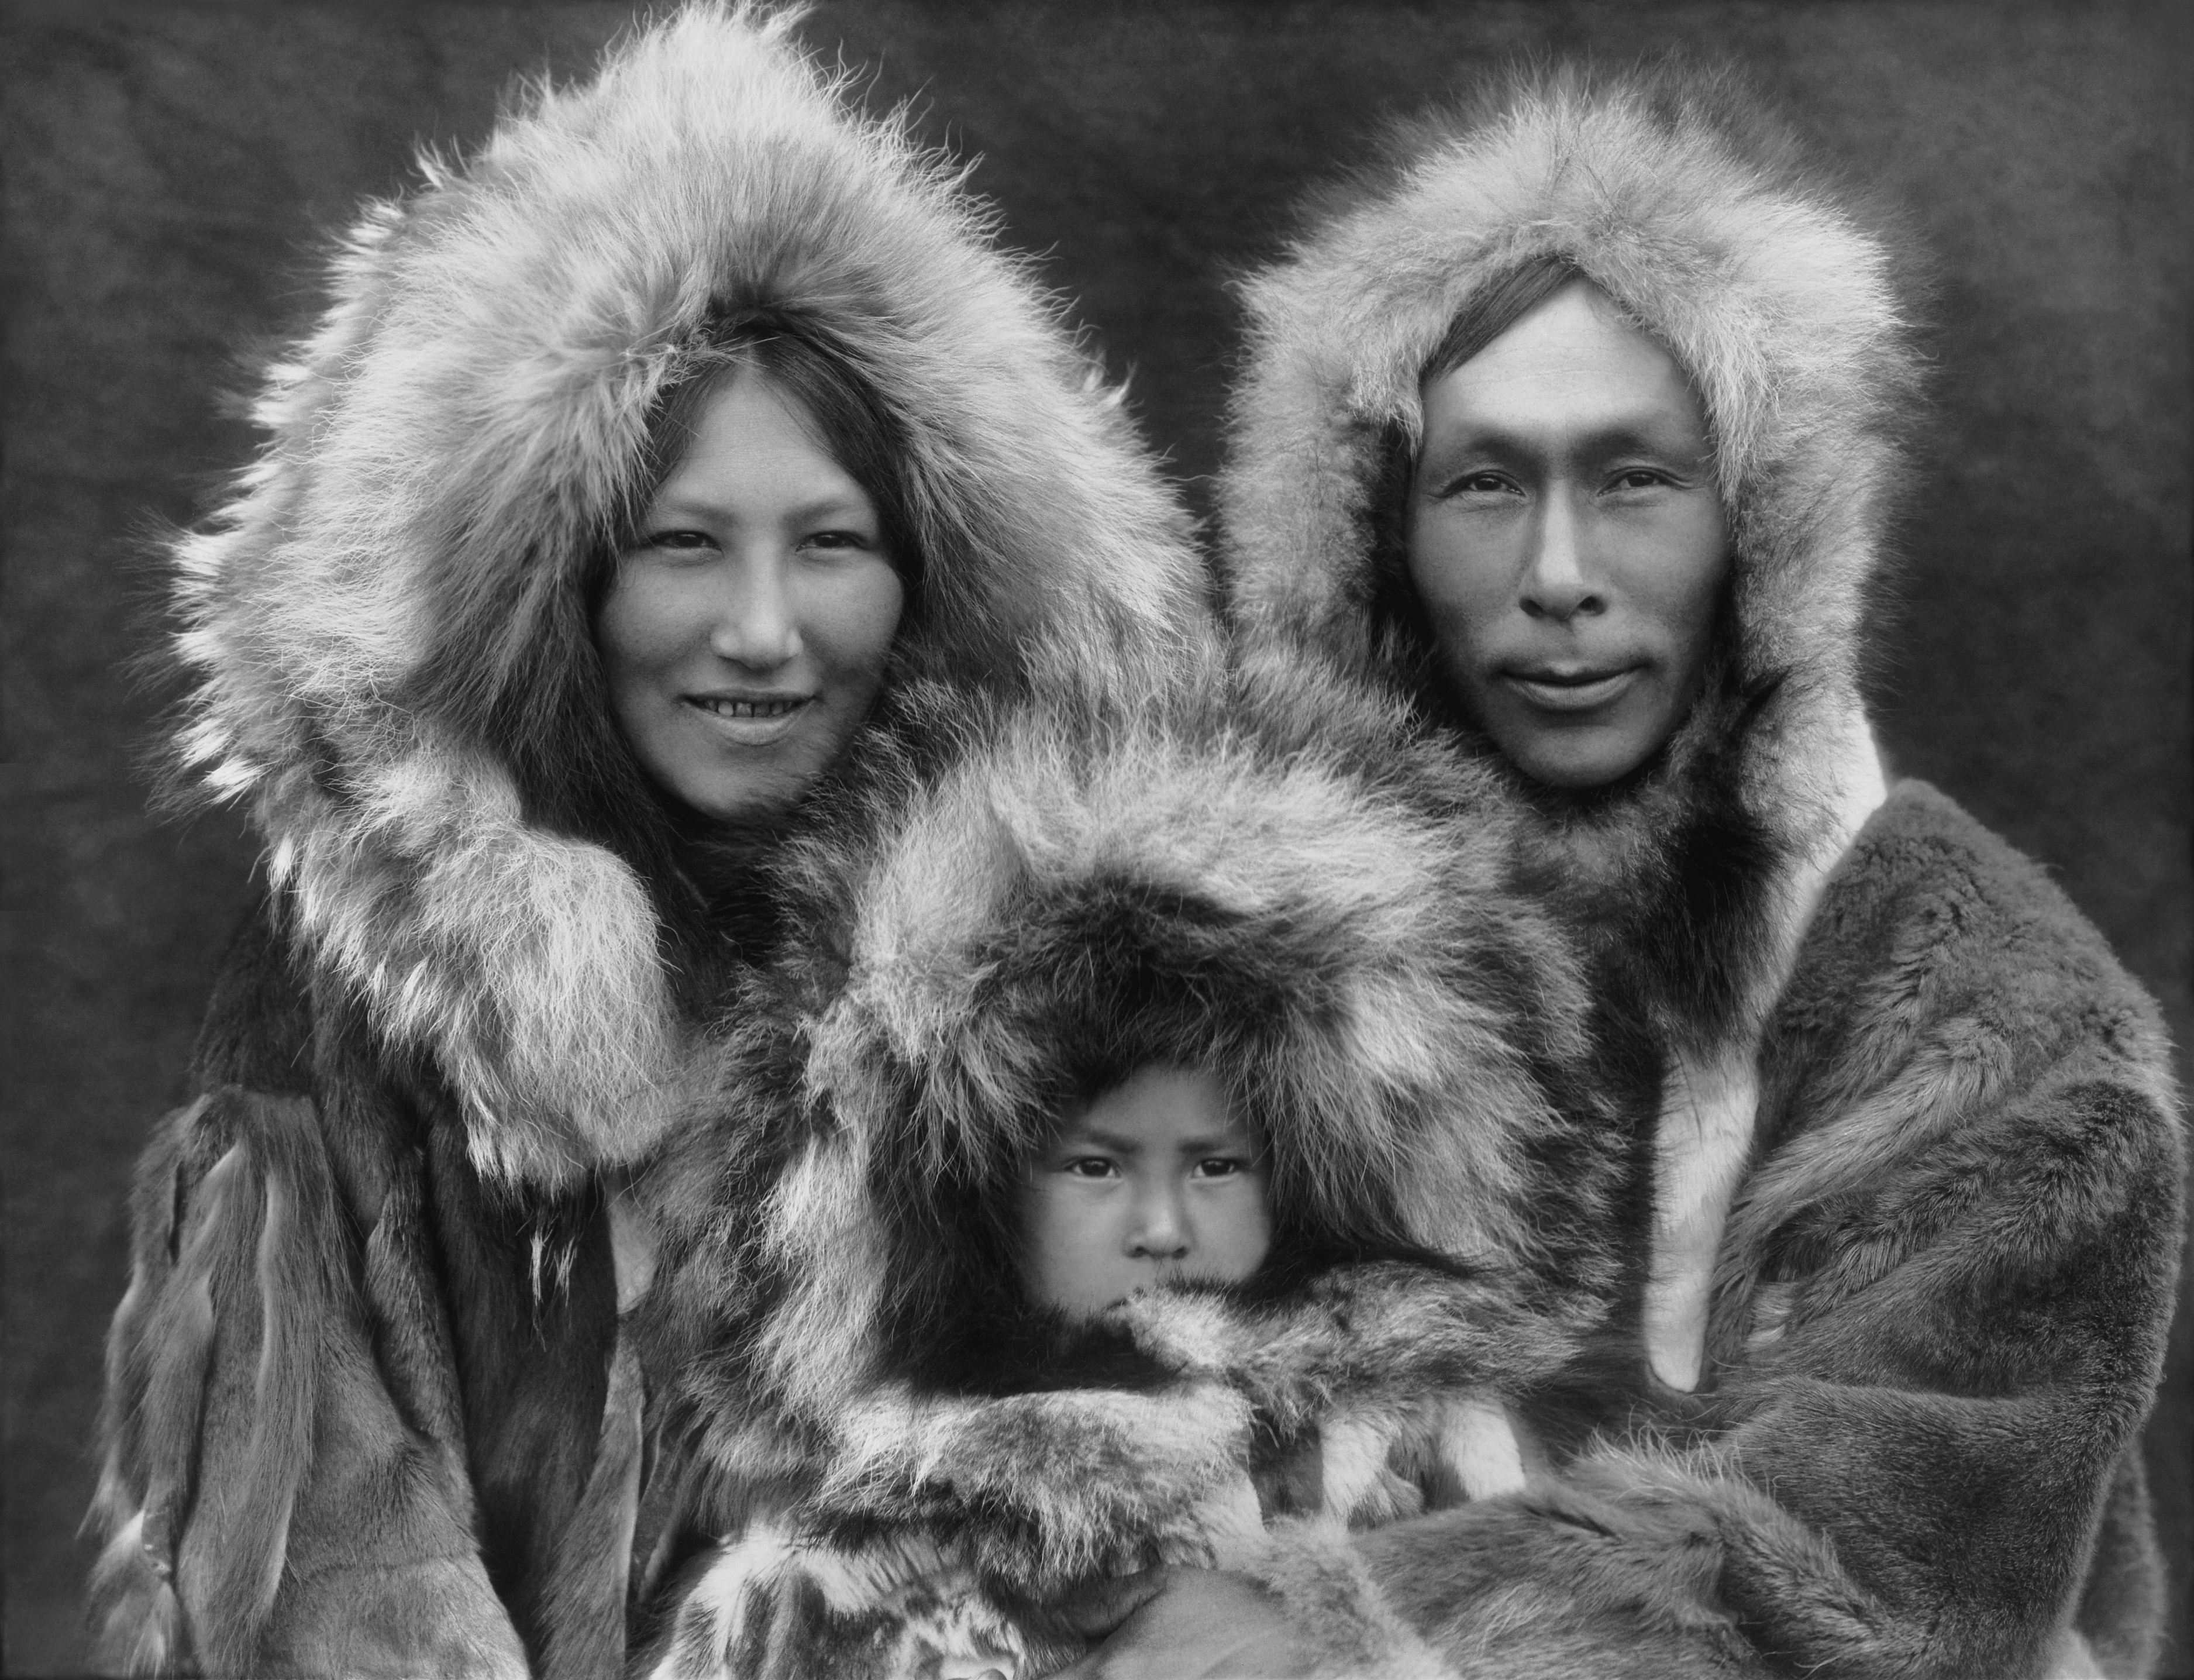 eskimo inupiat alaska native american photos